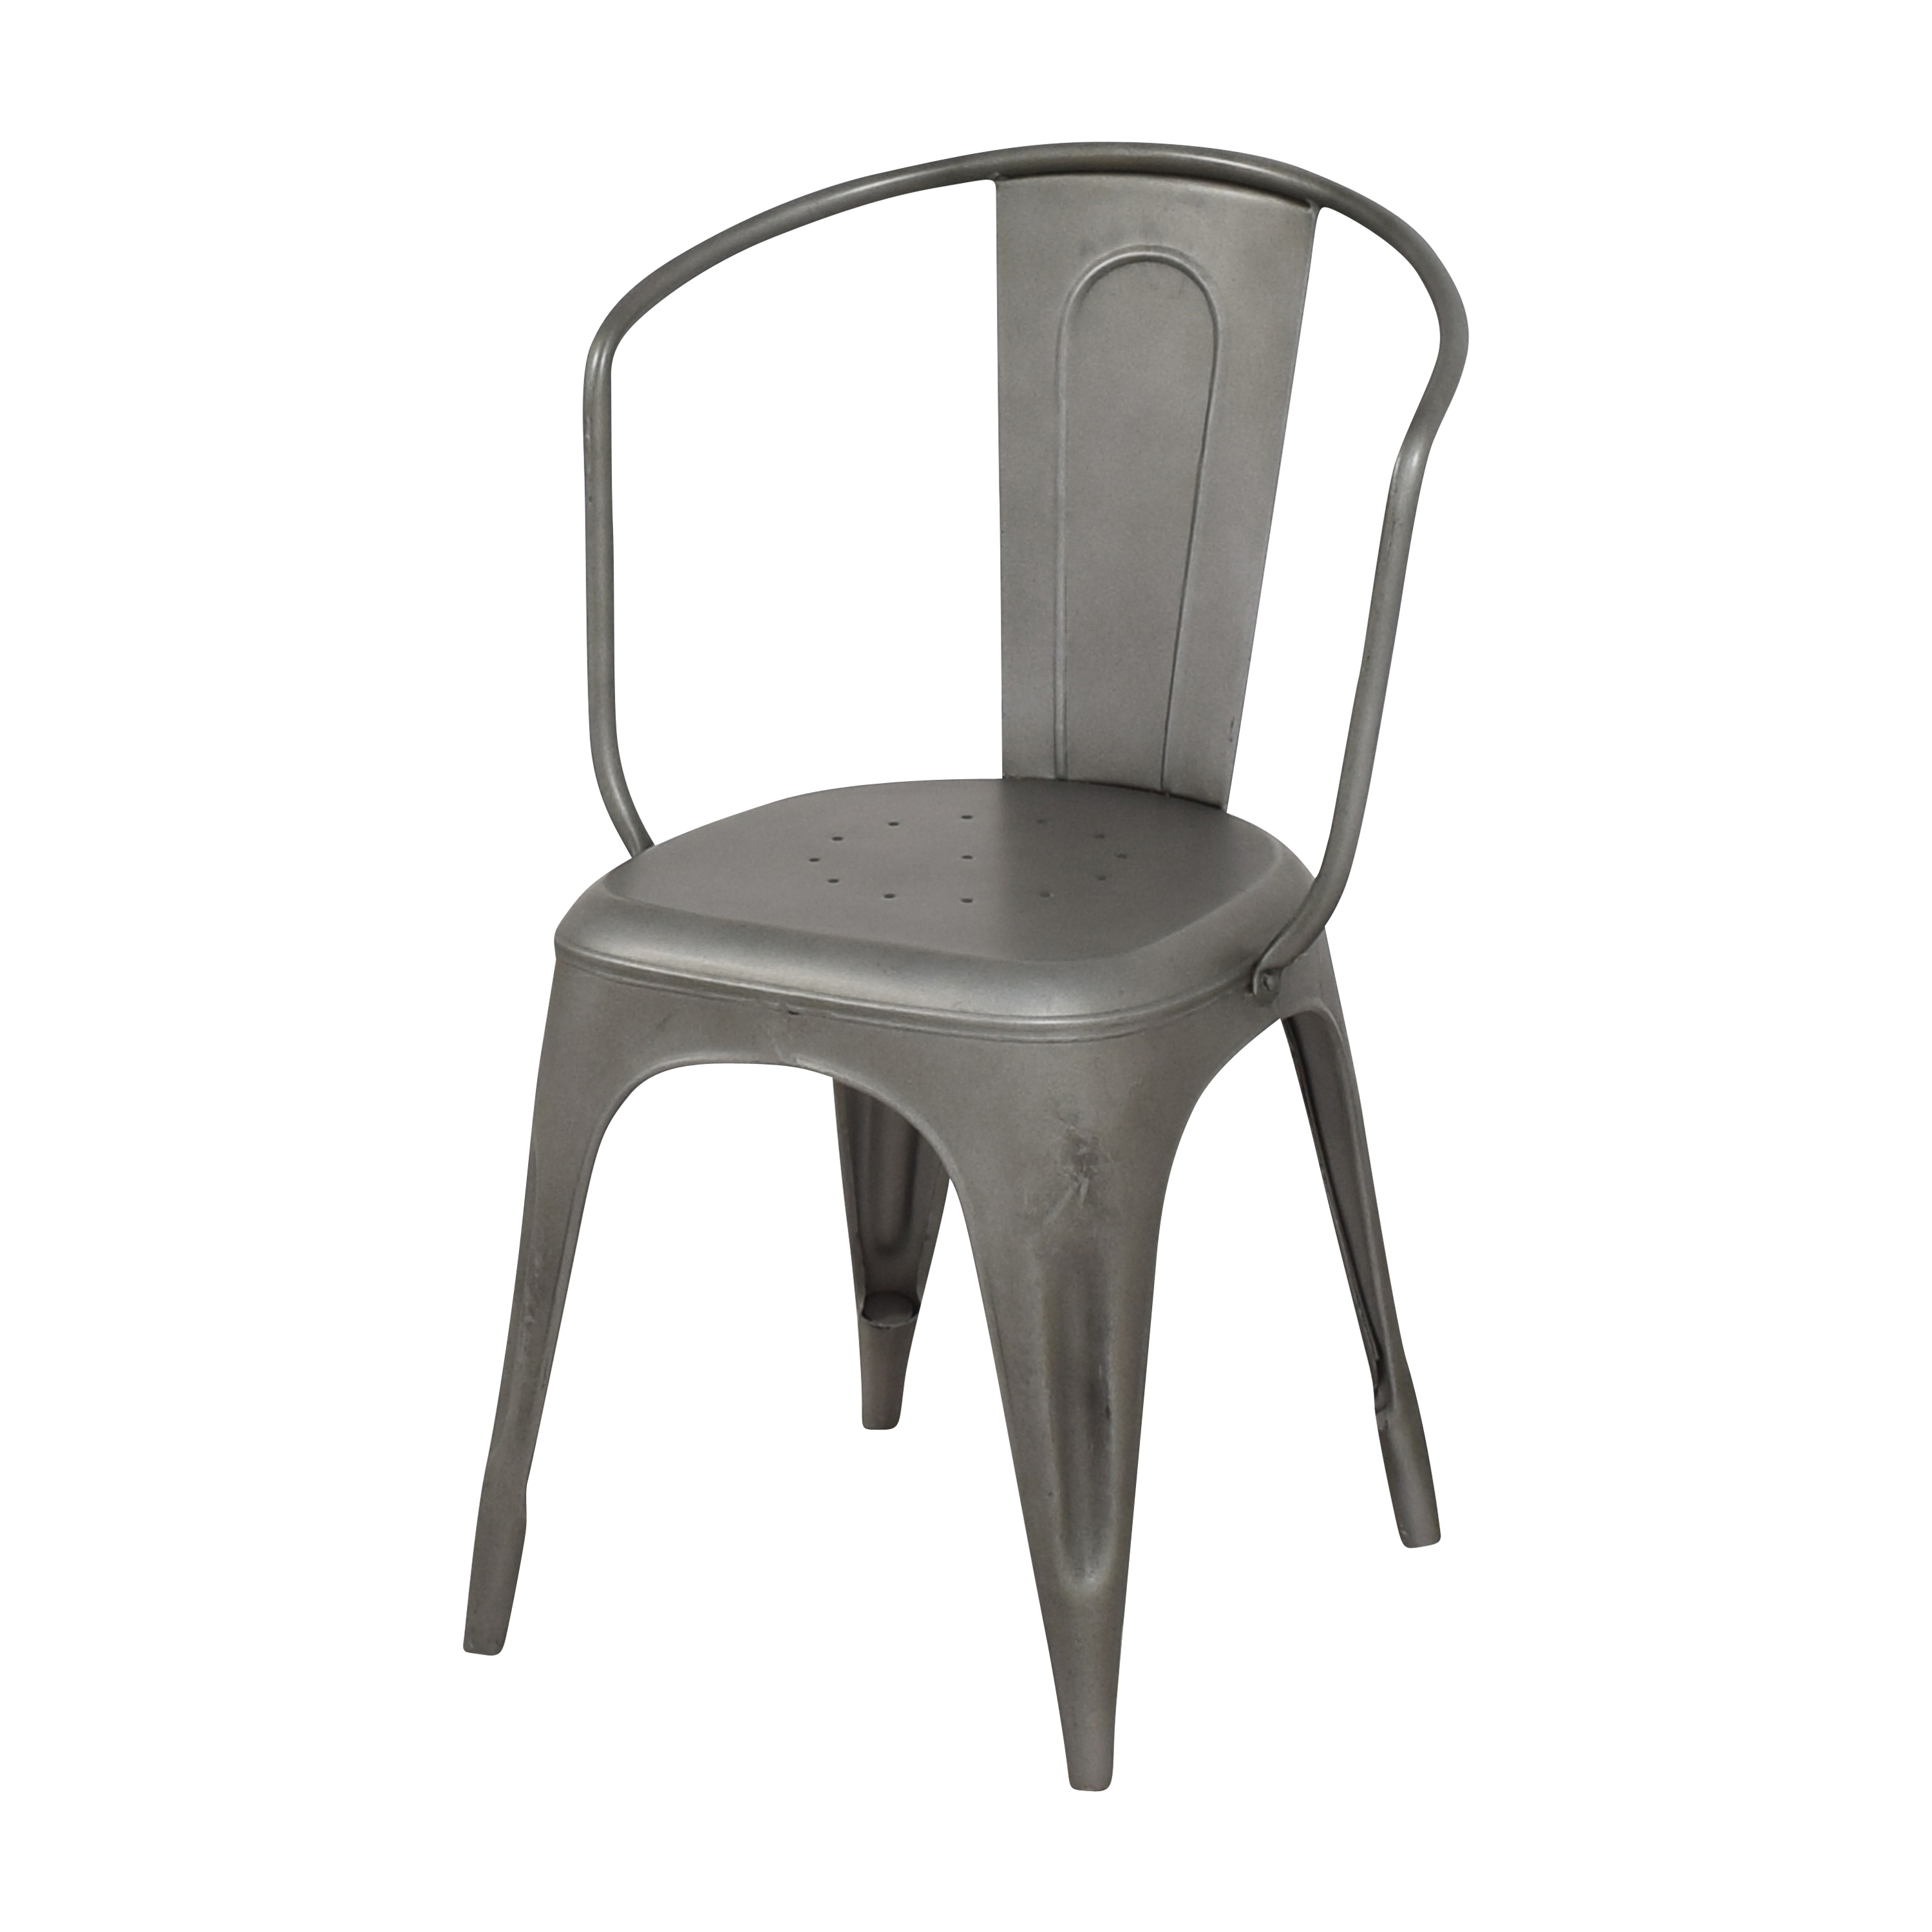 Restoration Hardware Restoration Hardware Marcel Modern Armchairs for sale